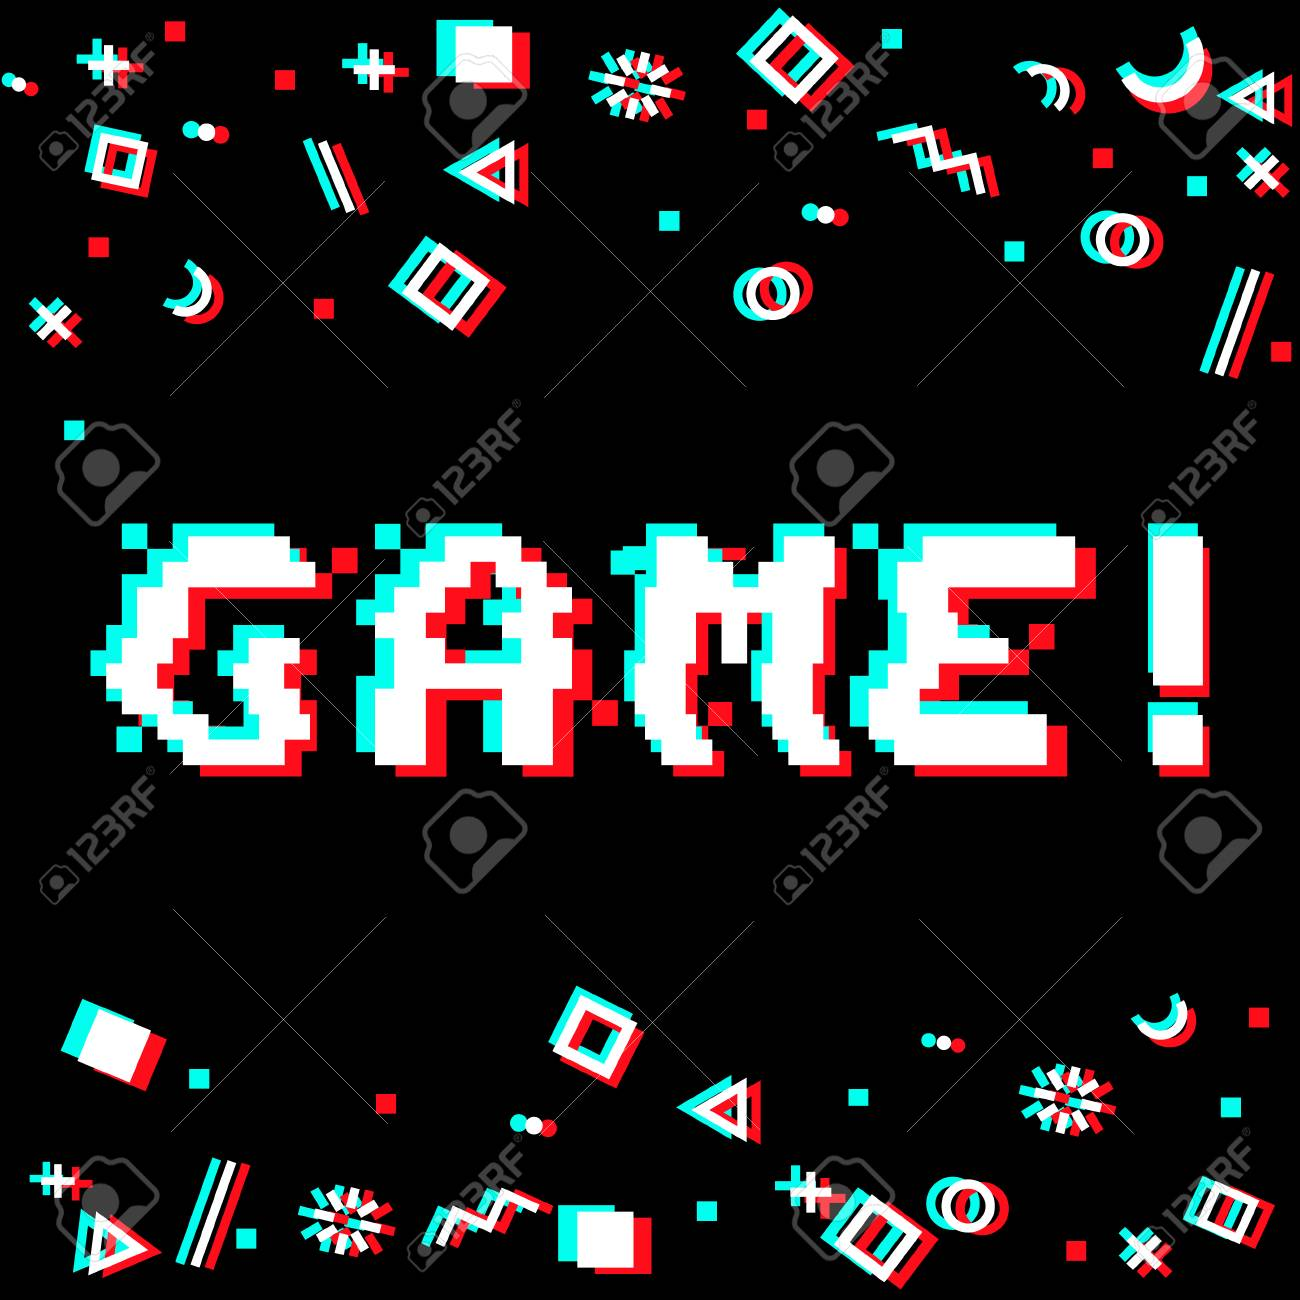 vector game phrase in pixel art 8 bit style with glitch vhs effect